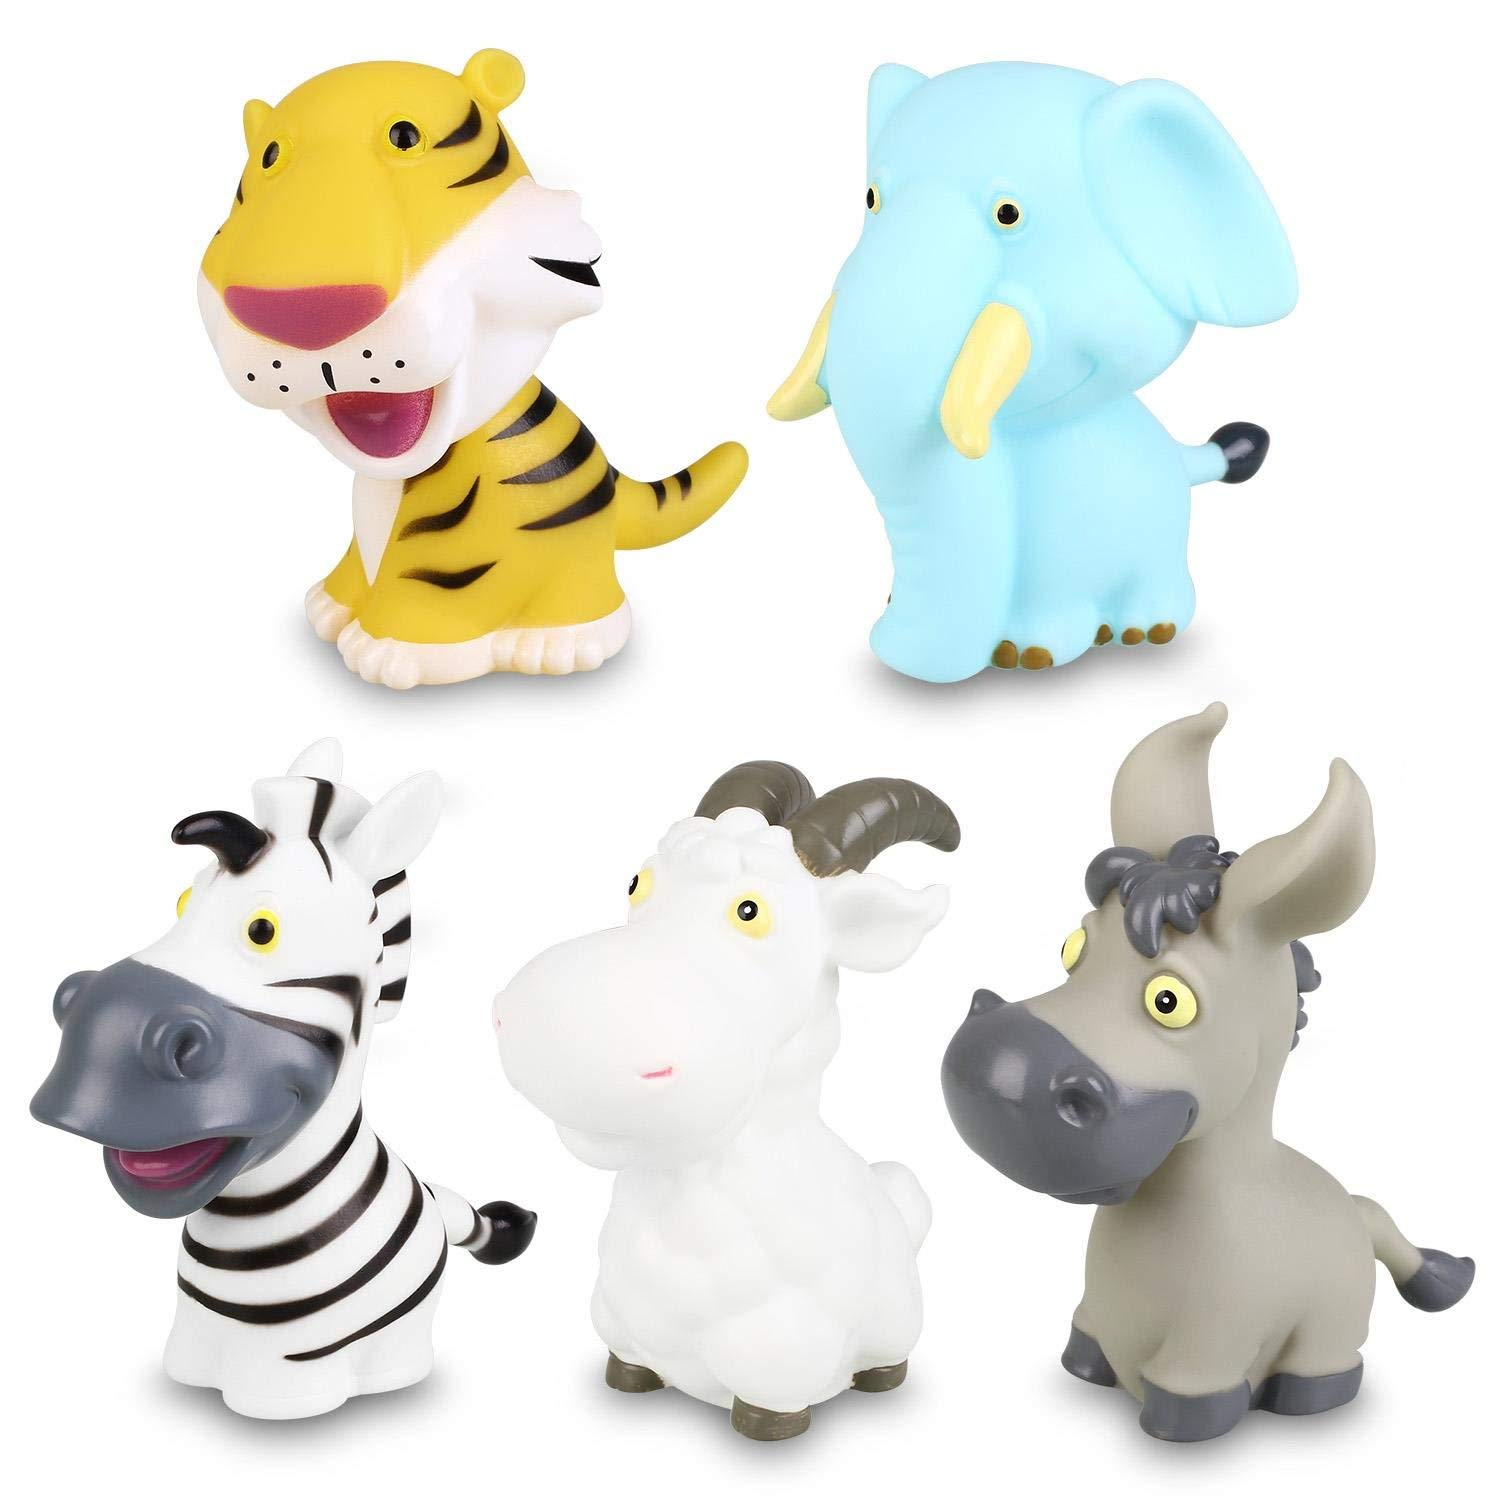 Water Bath Toys Peradix Baby Bath Assorted Floating Soft Sensory Animal Toys Set for Fun Water Bath Tub Shower Bathtime 5pcs with Bag for Hang Dry